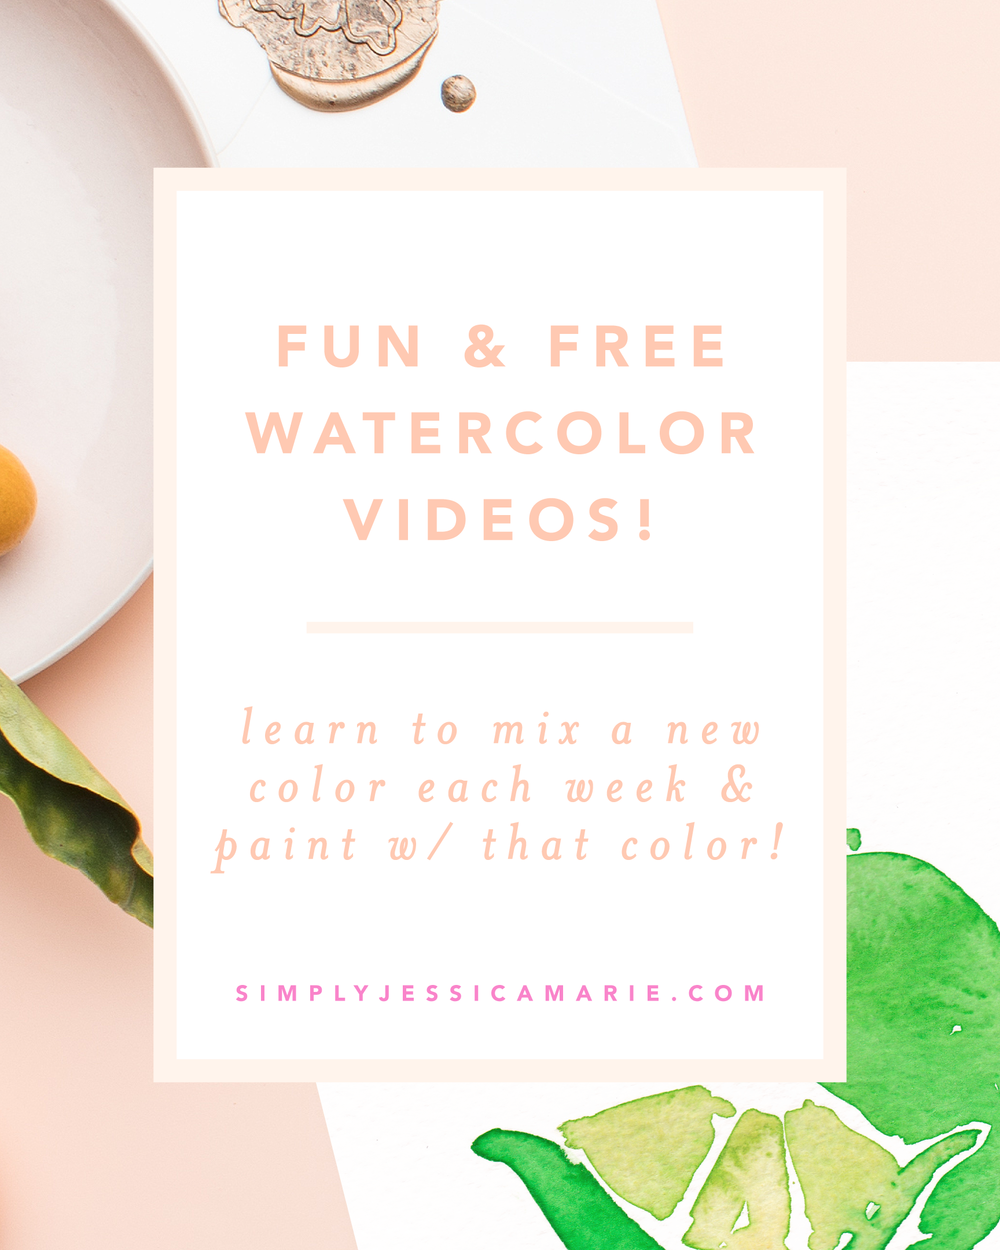 Fun and free watercolor videos by Simply Jessica Marie! Learn to mix new colors each week and paint with that color! | SC Stockshop